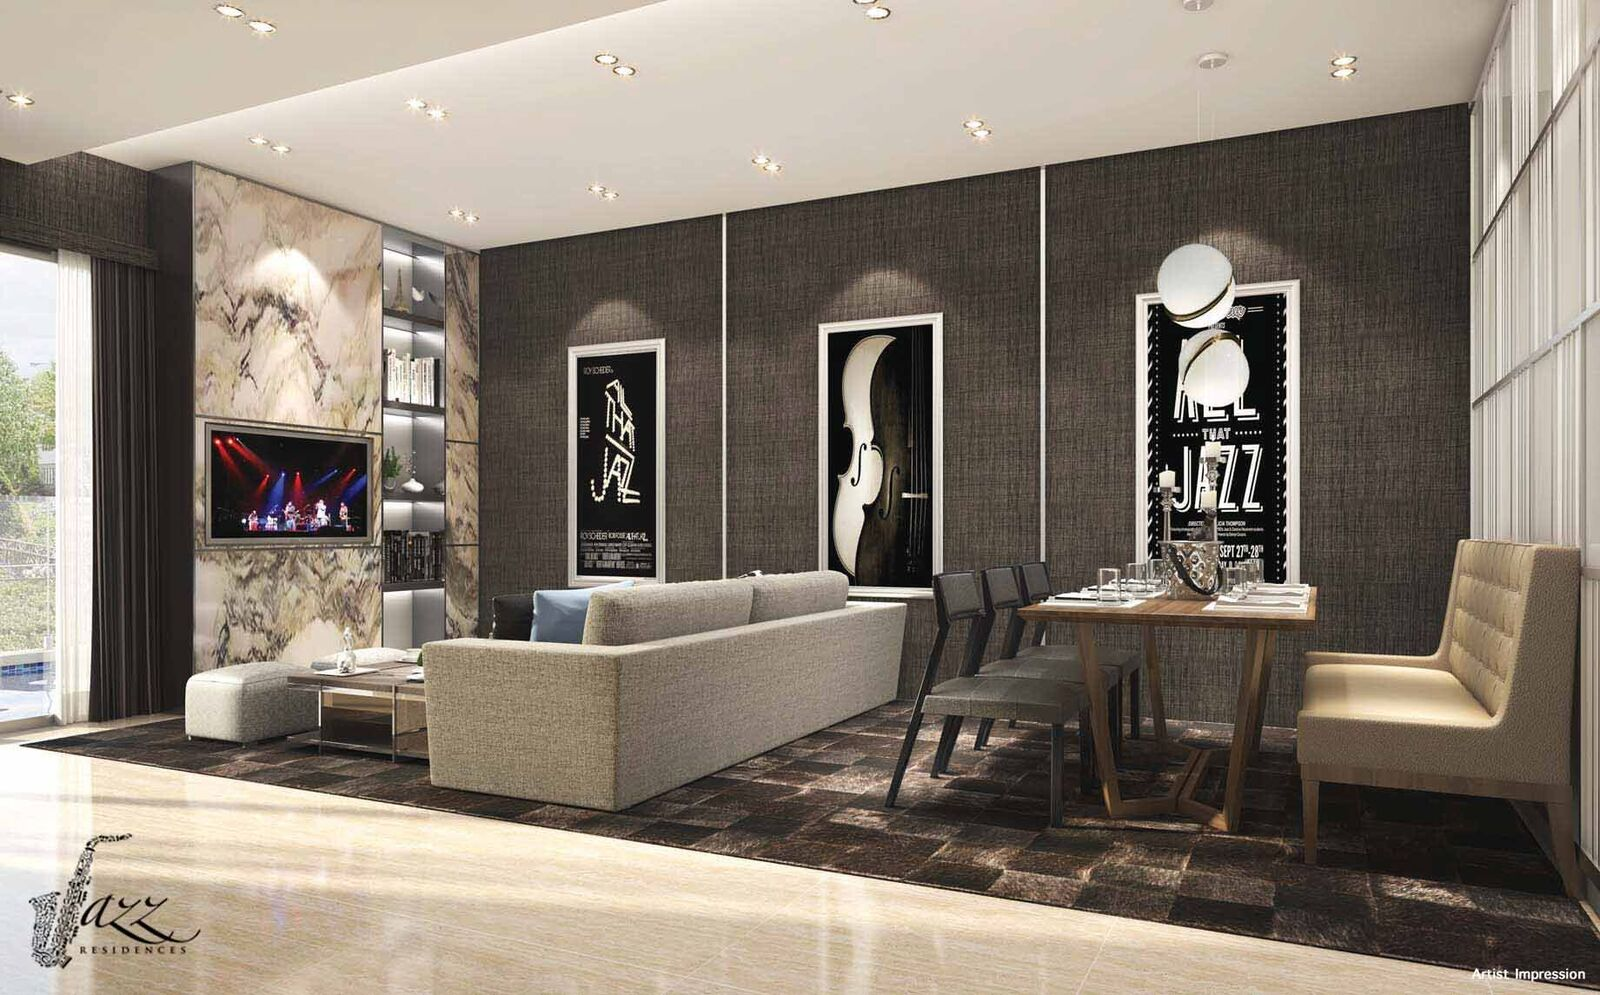 Jazz residences strata landed sales and price info for Living room jazz los angeles